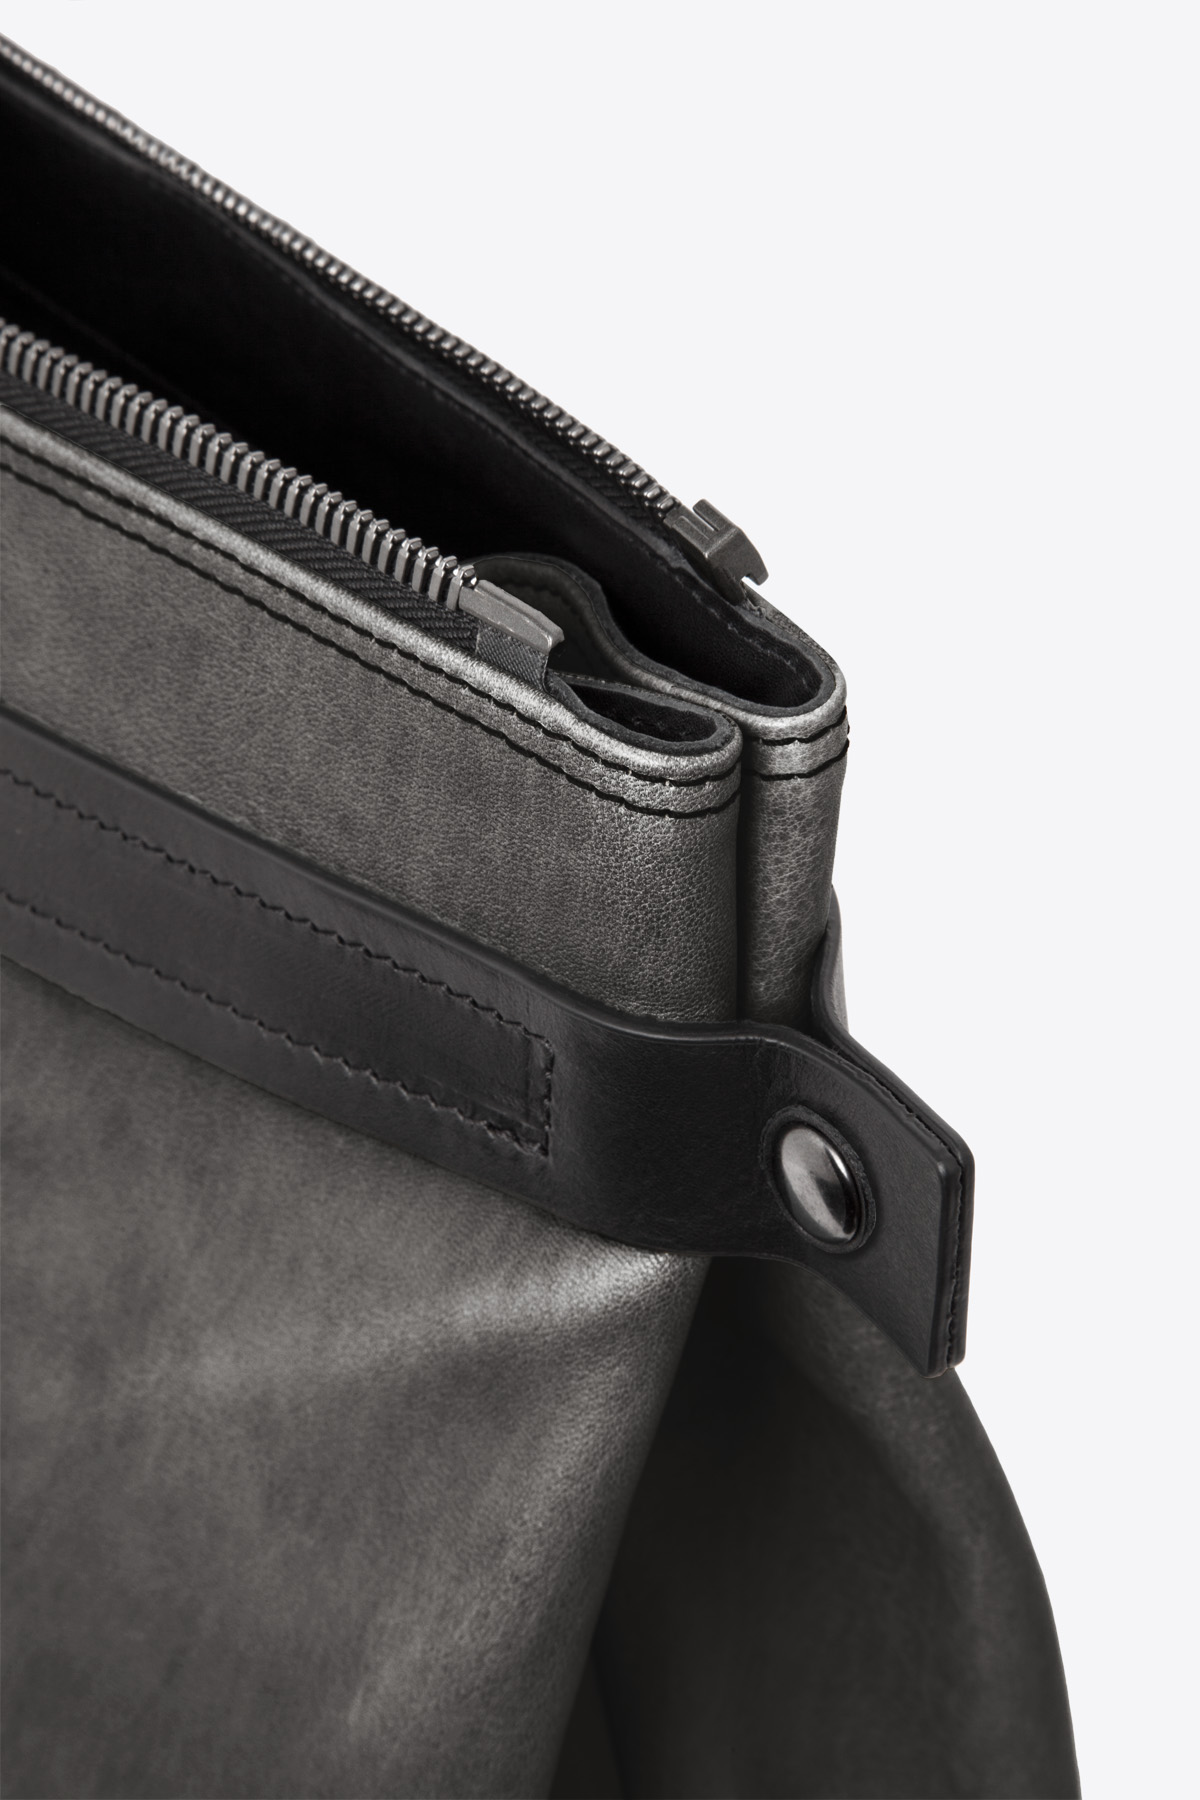 dclr007s-tote-a2-shadowgray-detail